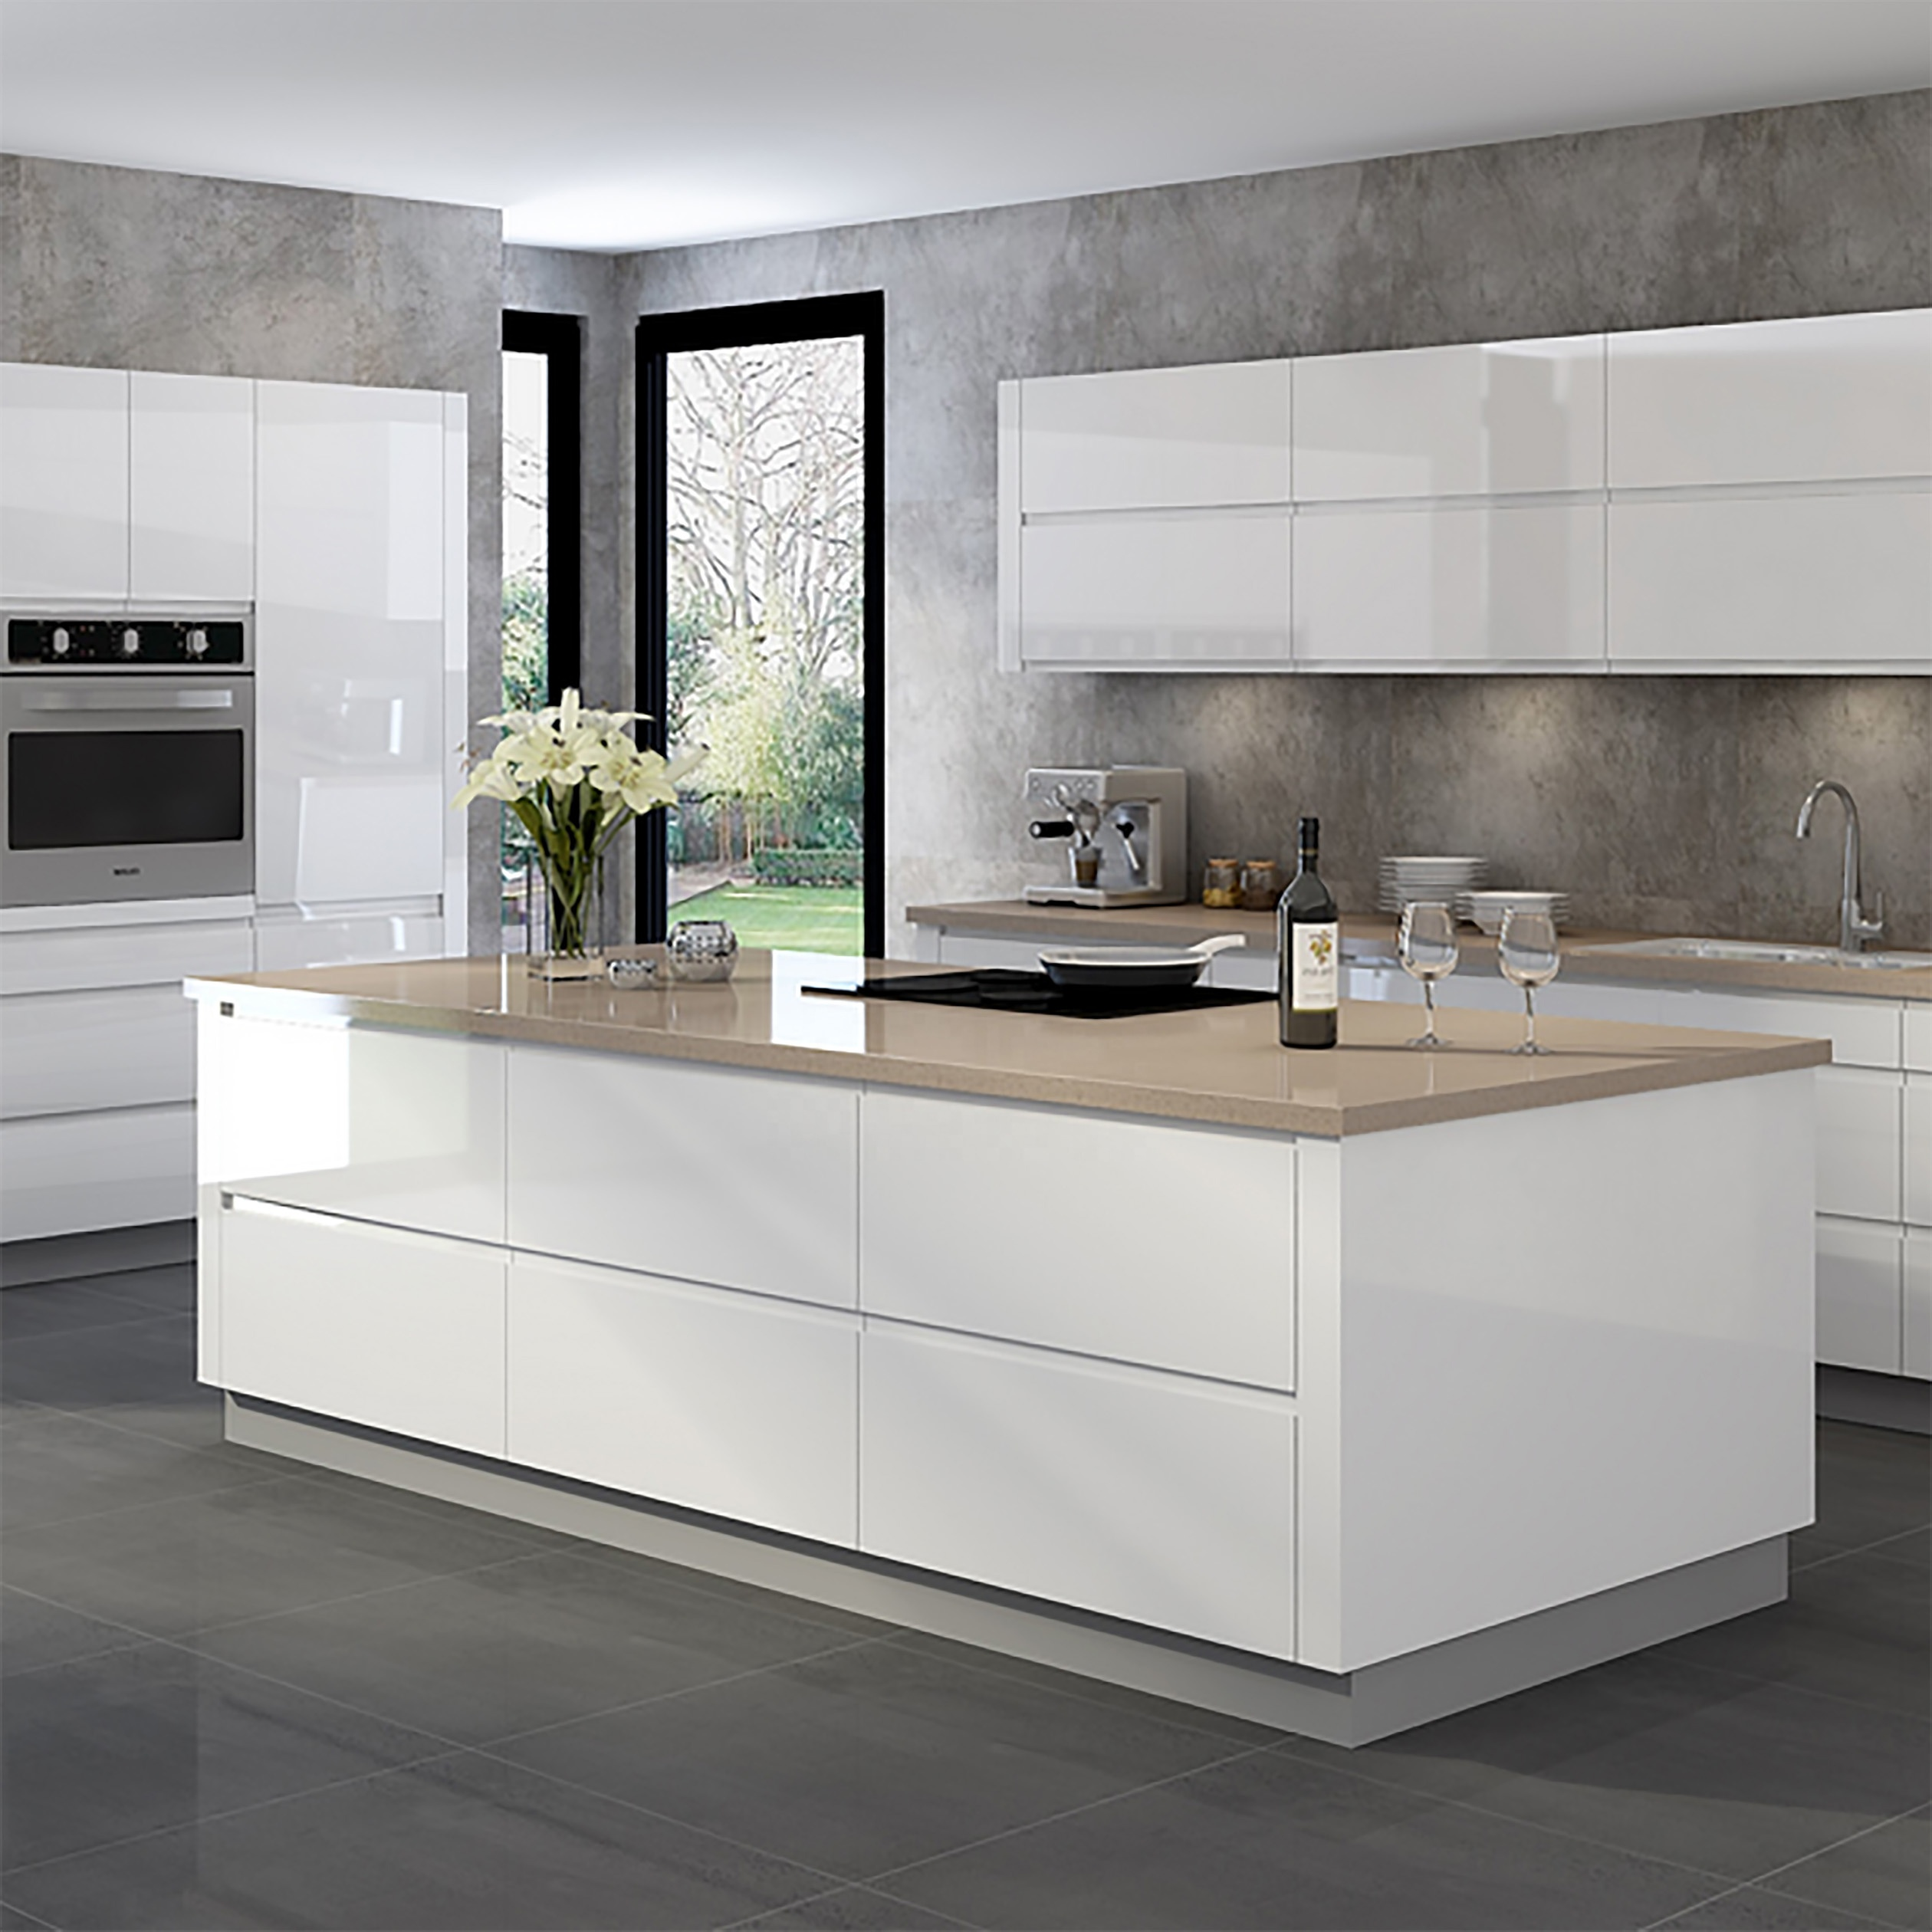 Modern Style Modular Luxury White Lacquer Kitchens Designs Buy